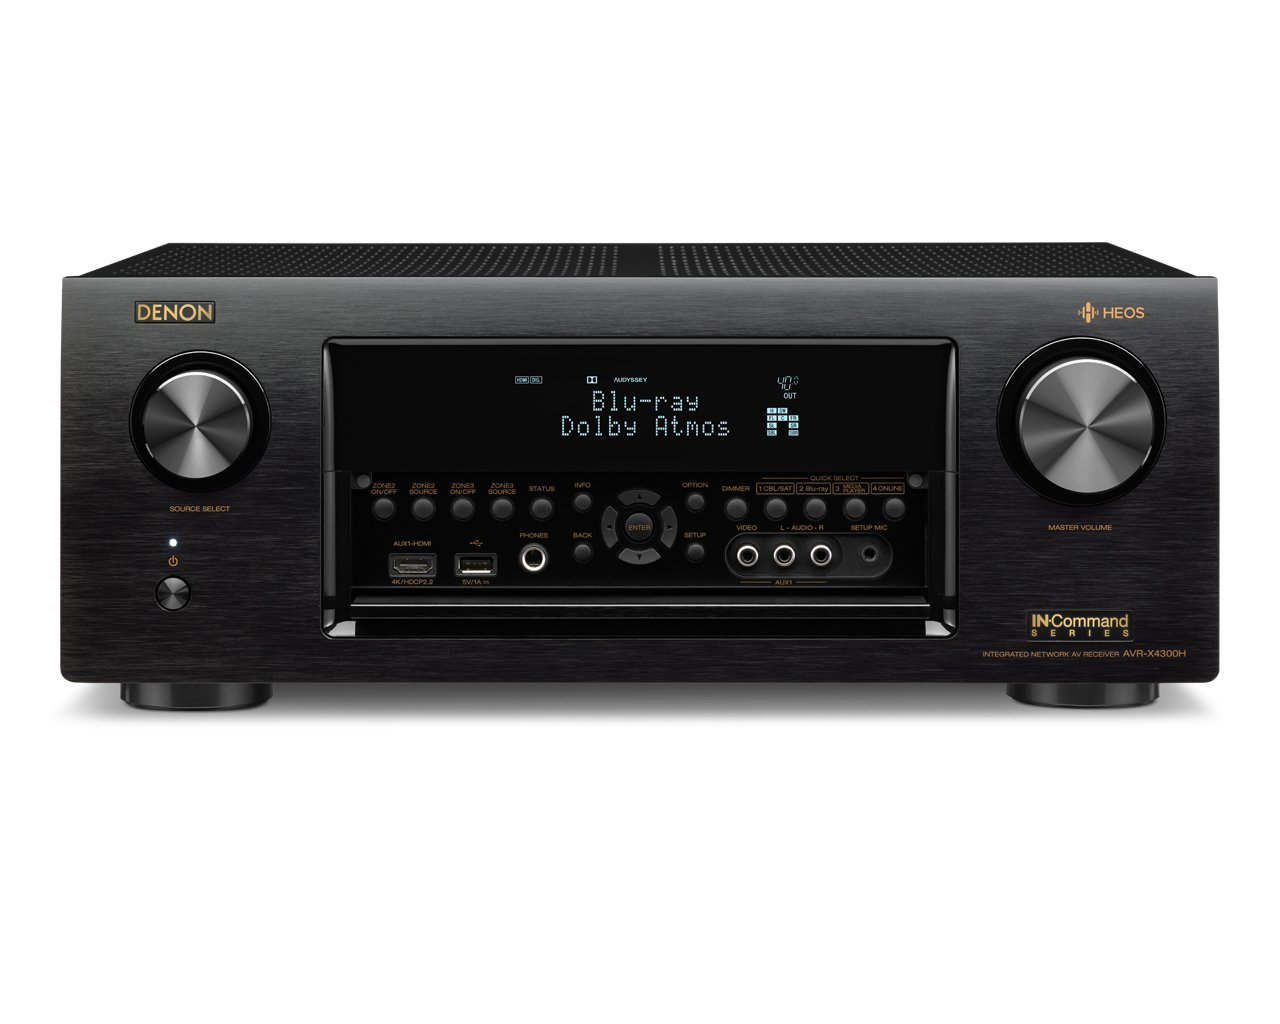 Denon Avrx4300h 92 Channel Full 4k Ultra Hd Av Receiver Thread Wiring Aftermarket Headunit To Mach 460 Amps Correctly With Built In Heos Wireless Technology Featuring Bluetooth And Wi Fi Works Alexa